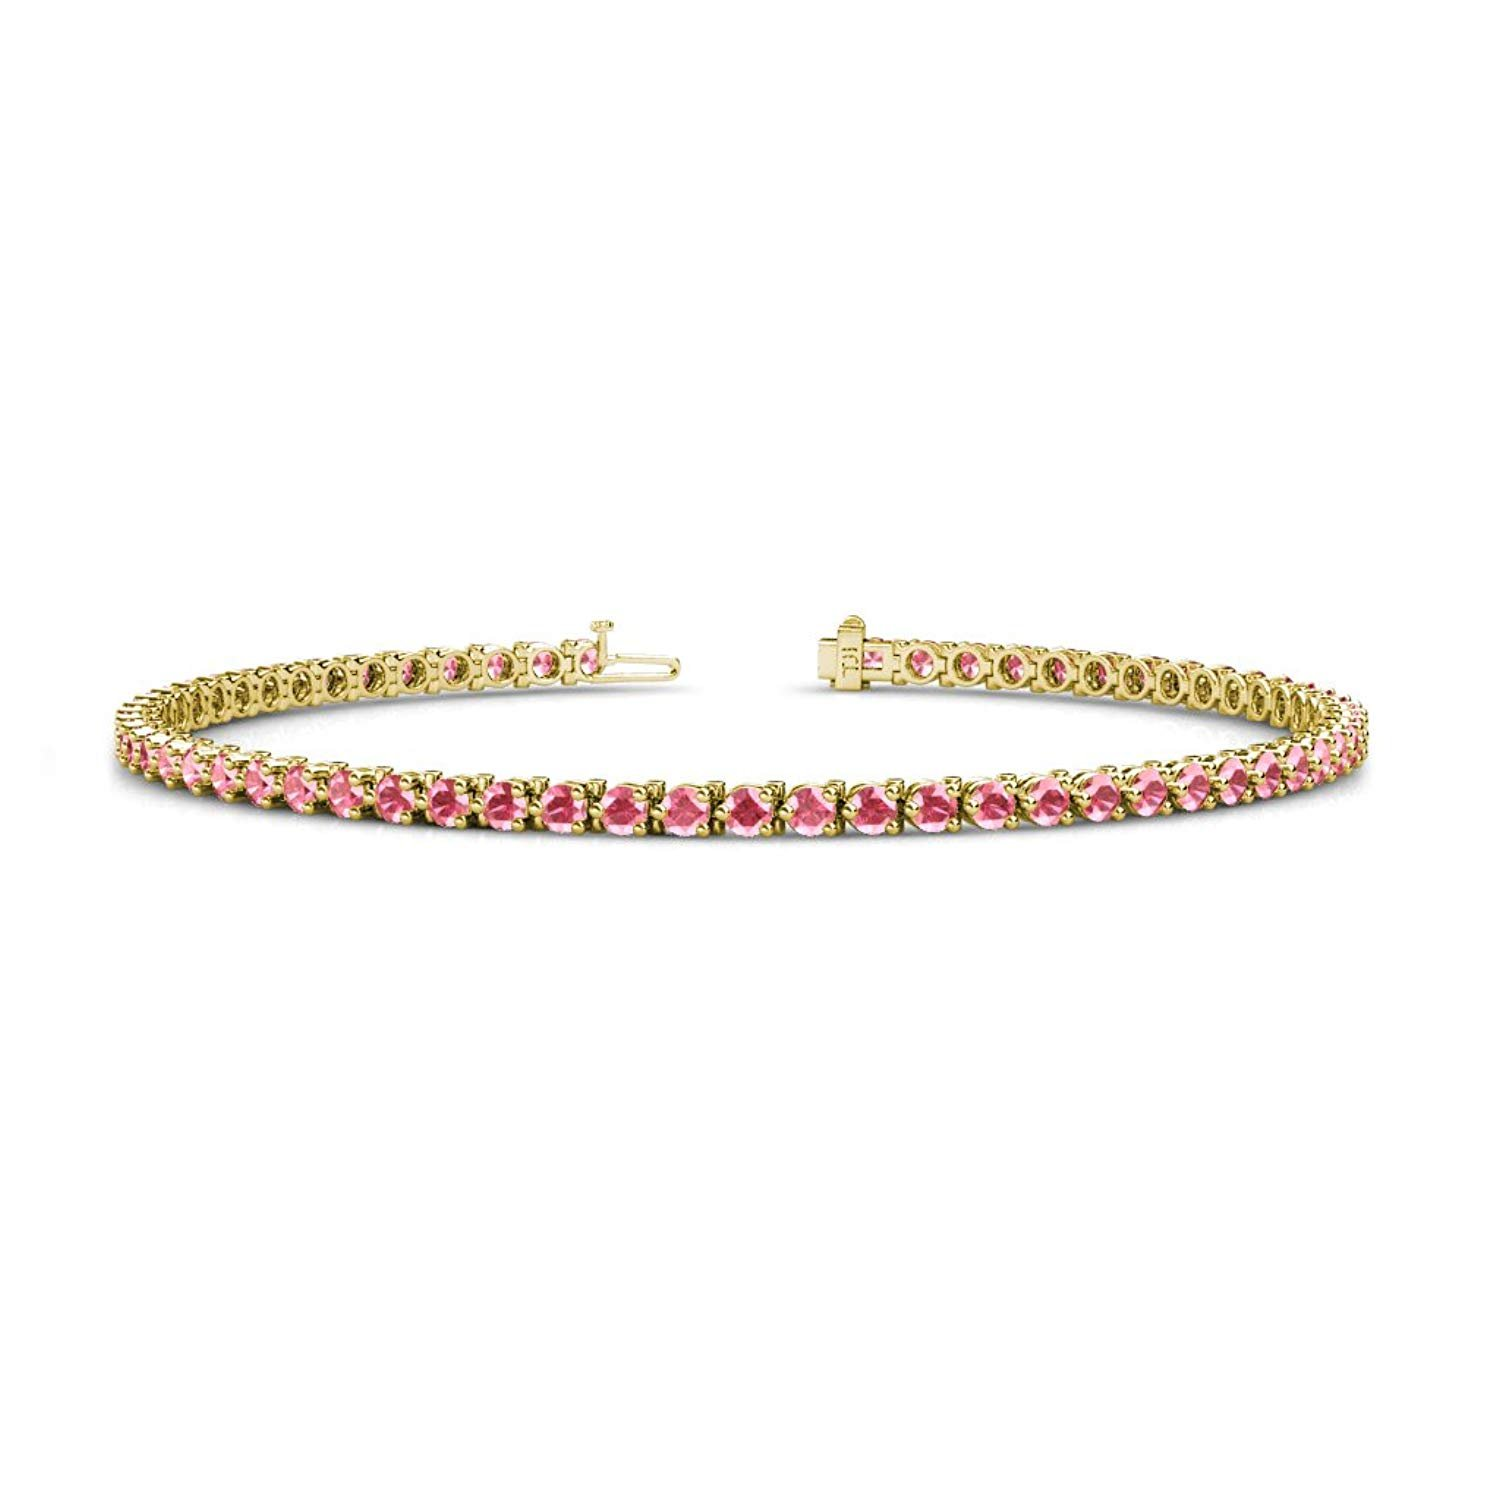 Pink Tourmaline 2.4mm 3-Prong Tennis Bracelet 1.86 cttw in 14K Yellow Gold by TriJewels